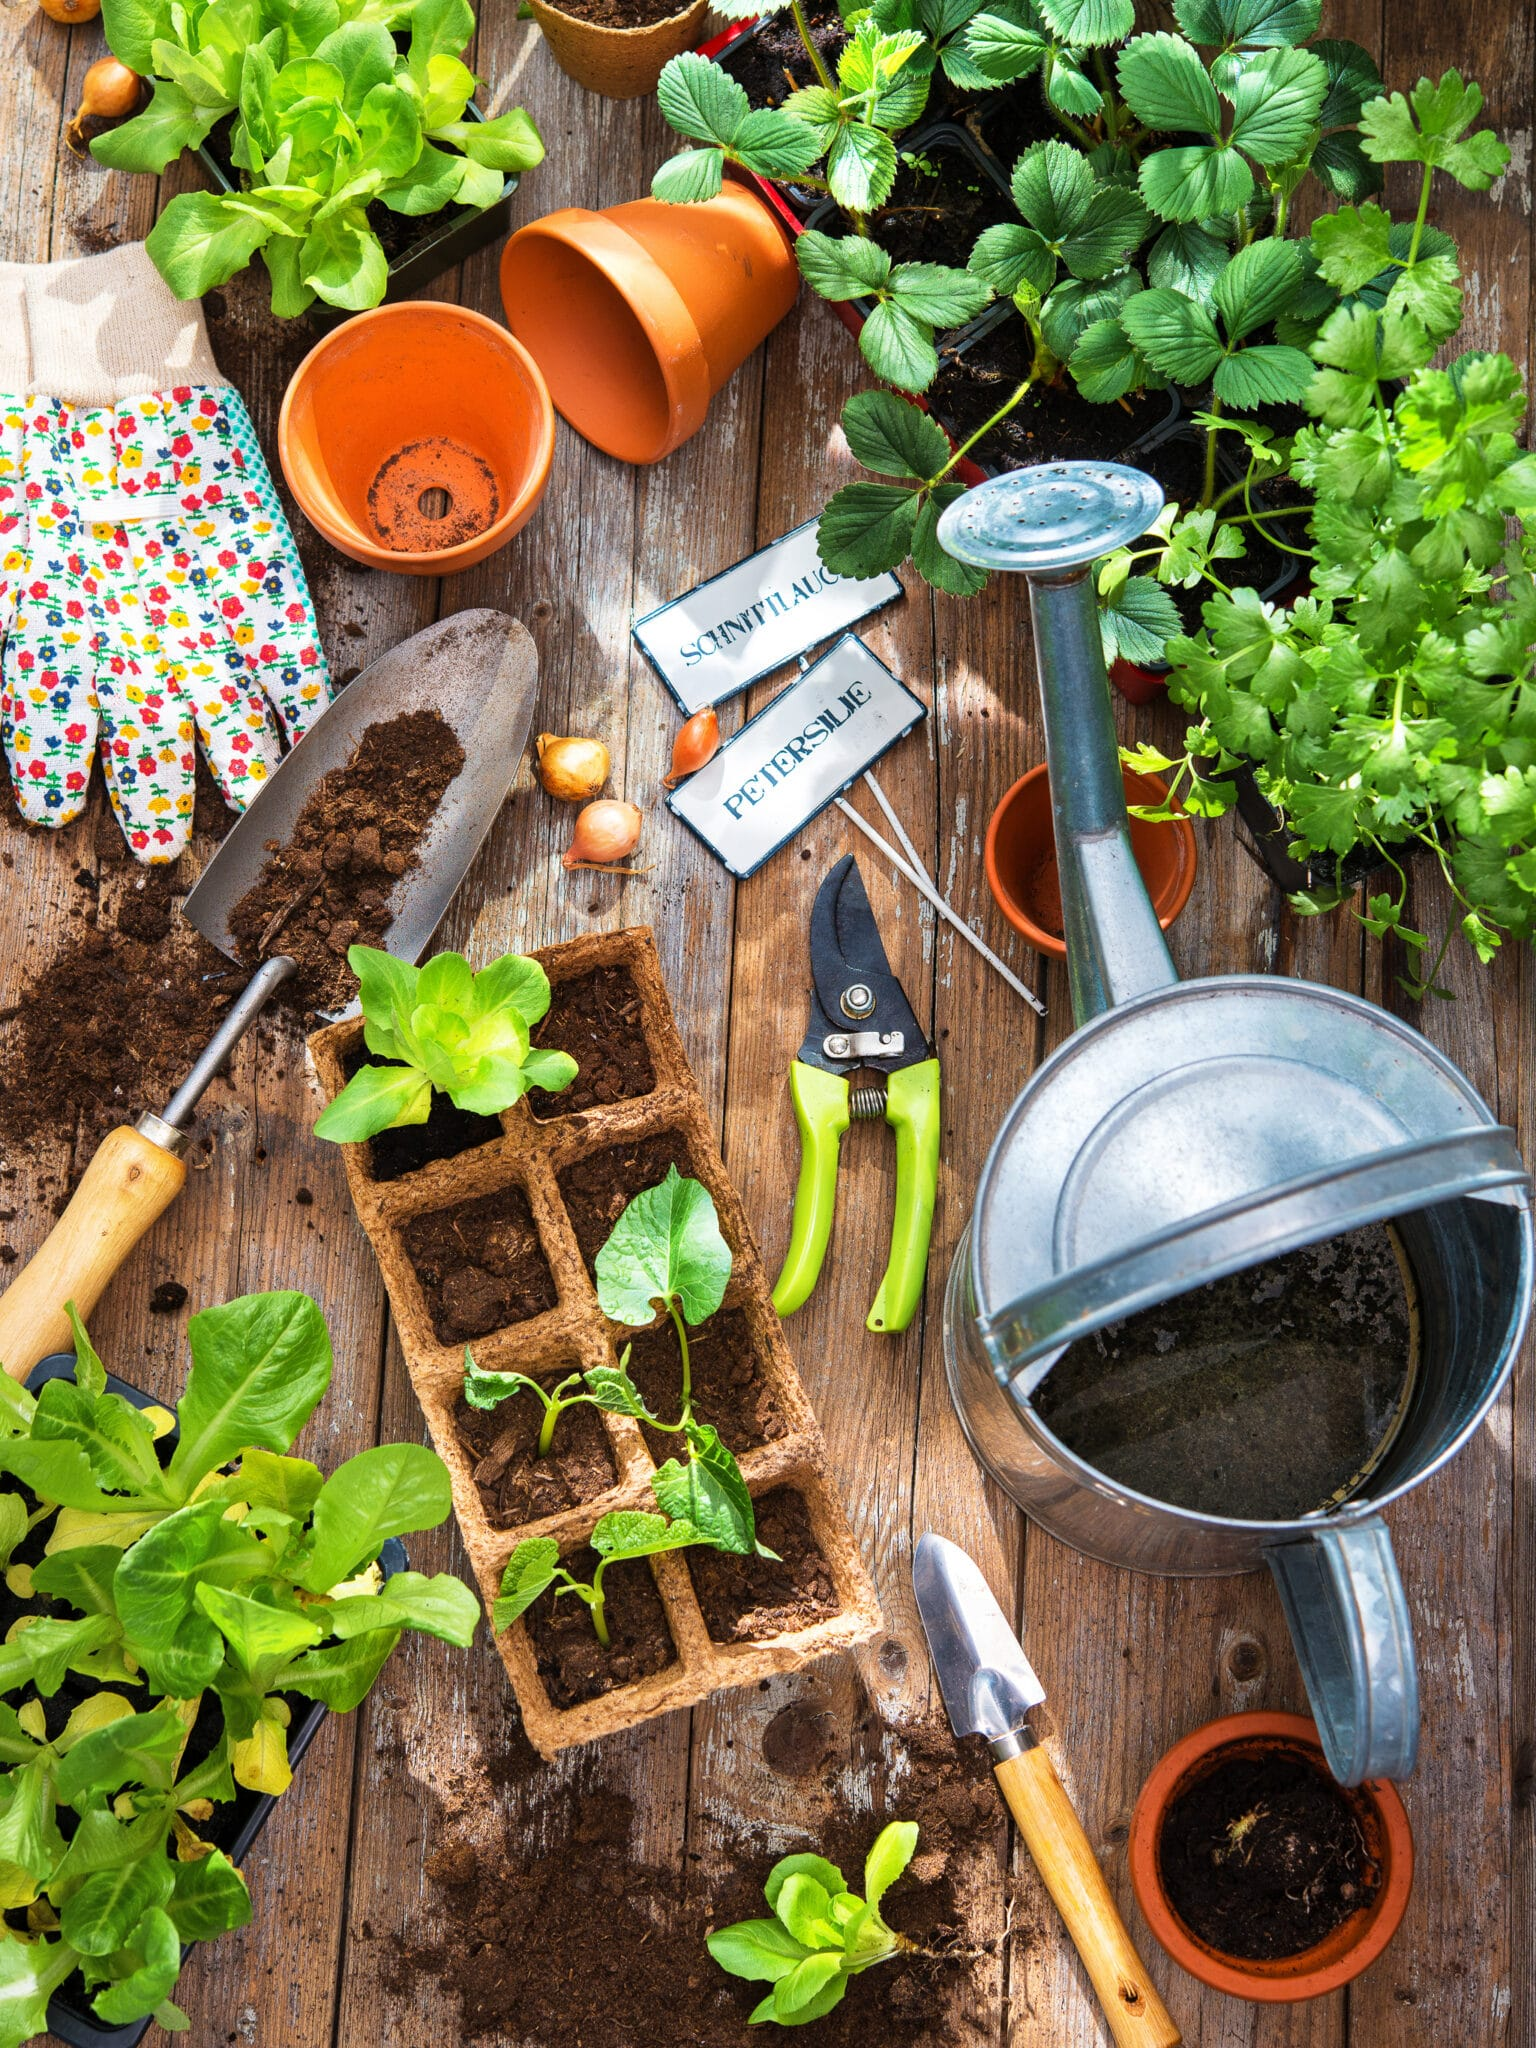 Tools and seedlings on a table ready for Spring gardening.